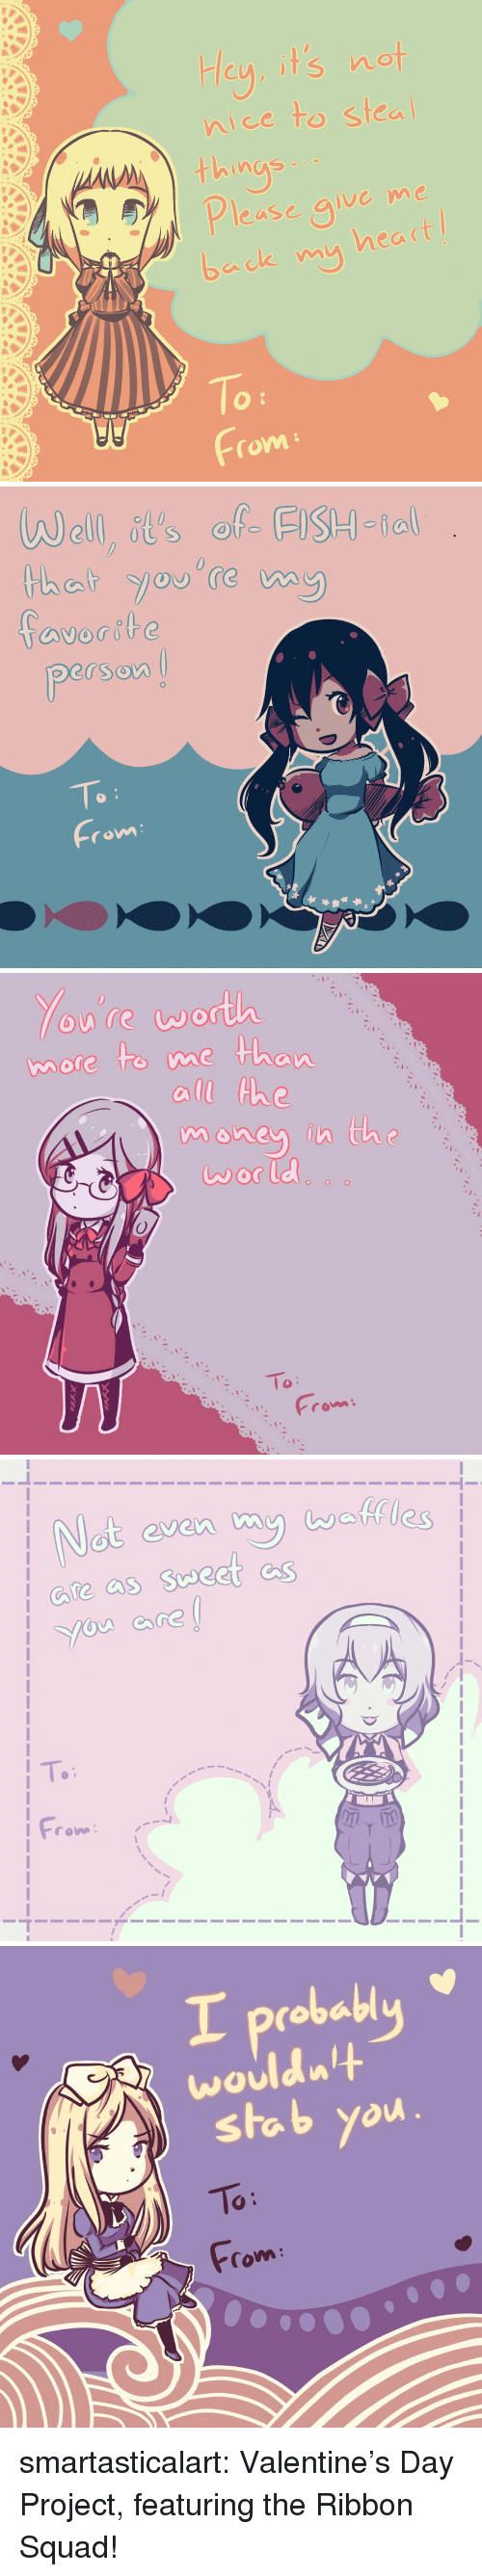 not nice: Hcy its not  nice to stea  thinas  Please give me  back mu heac  nS.  9  To  rom   person  rom   more to me Whan  al he   ale as  roe:   I probably  wouldn  stab you  To  om: smartasticalart:  Valentine's Day Project, featuring the Ribbon Squad!